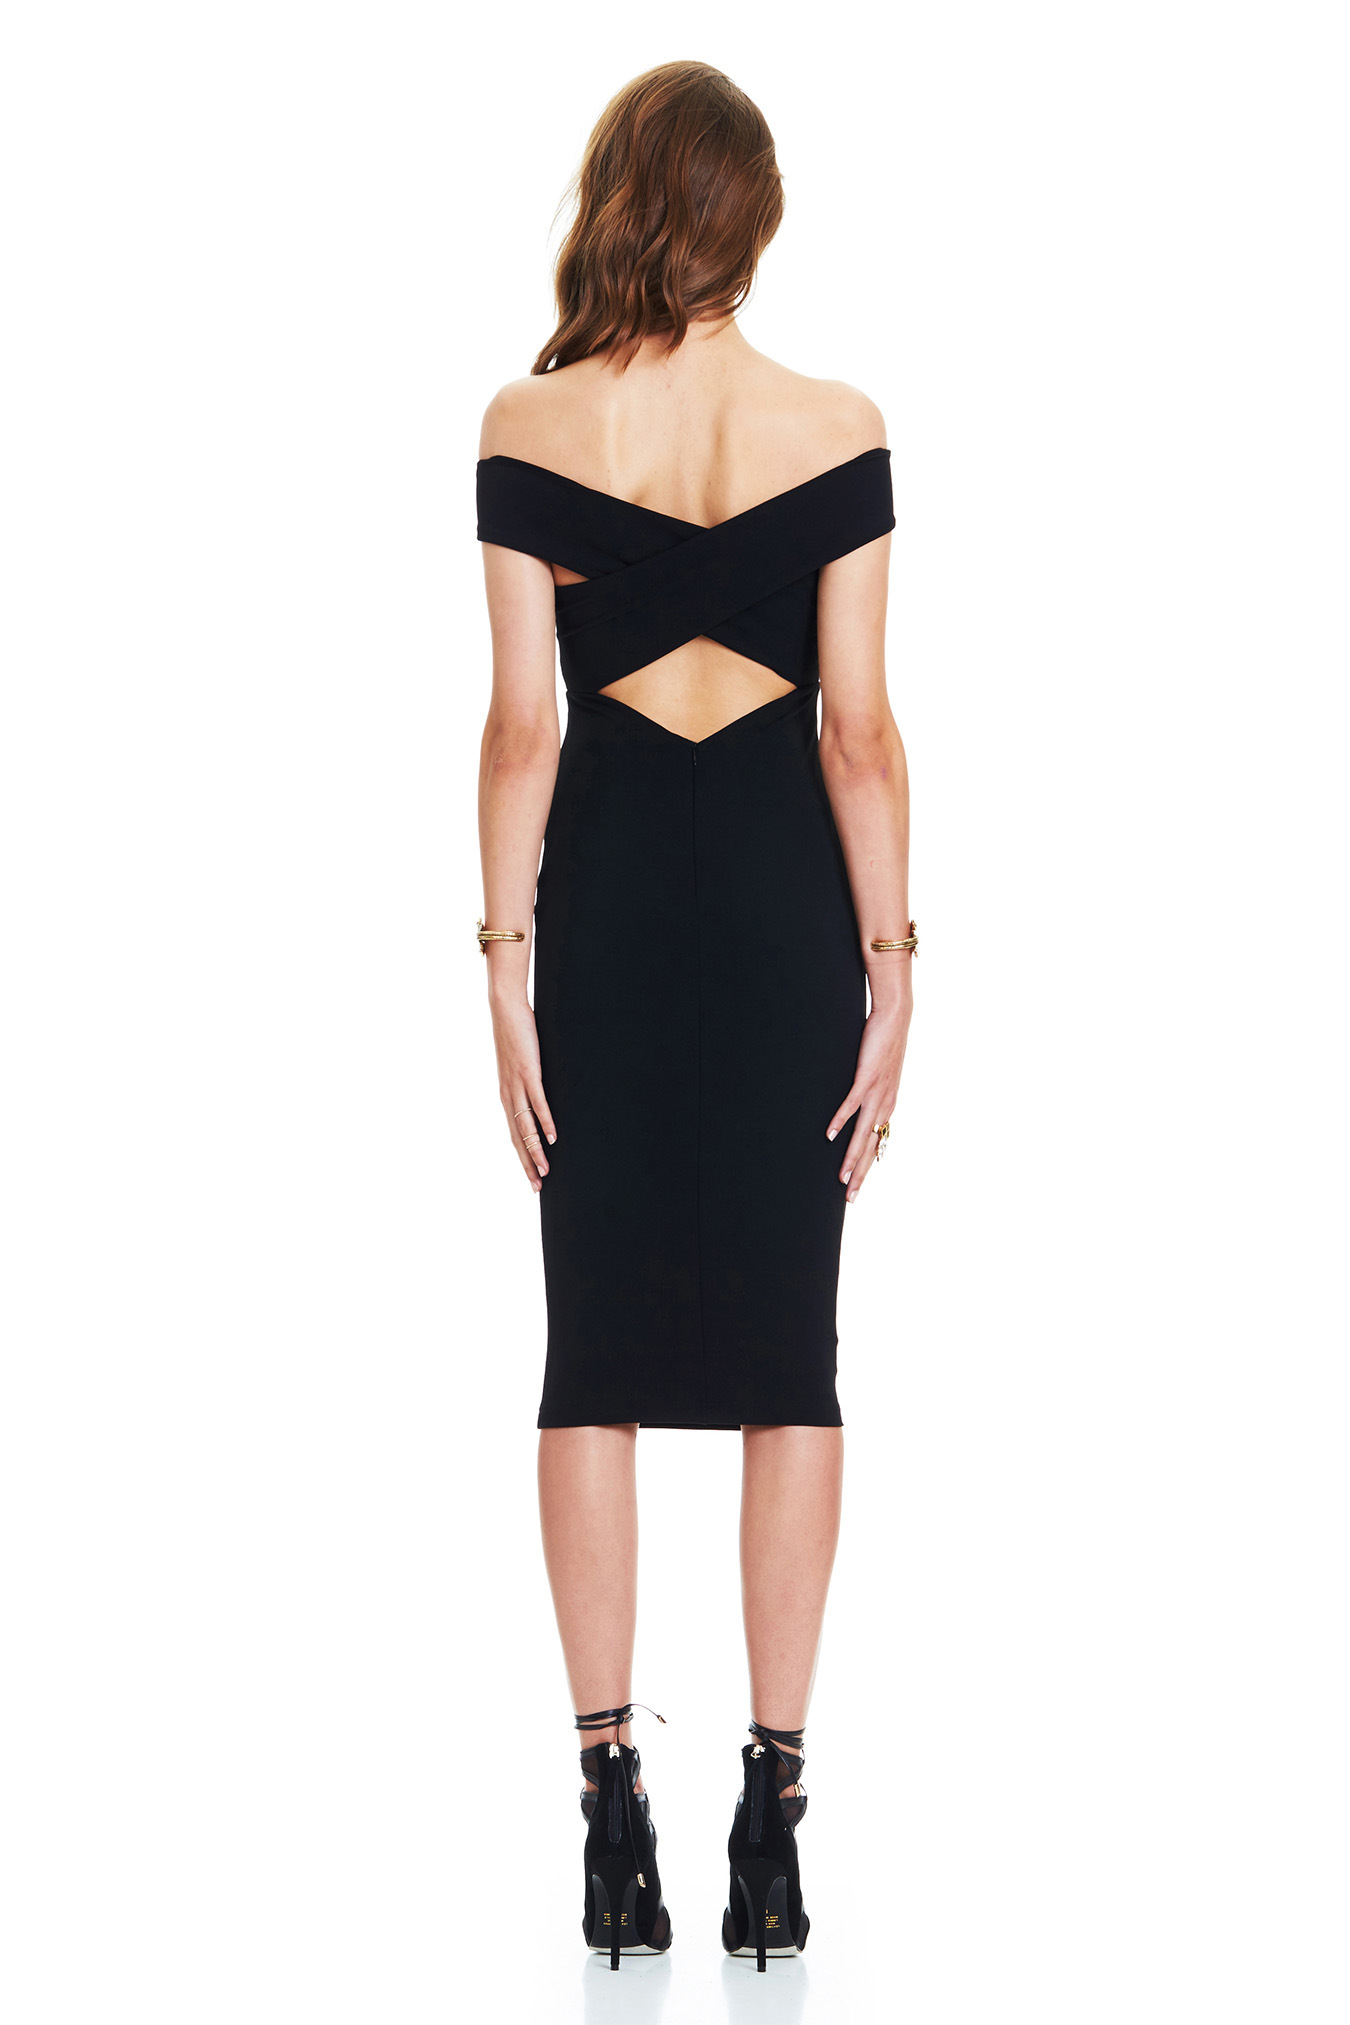 Stretch Slim Bodycon Keyhole Revealed Waist Back Dresses